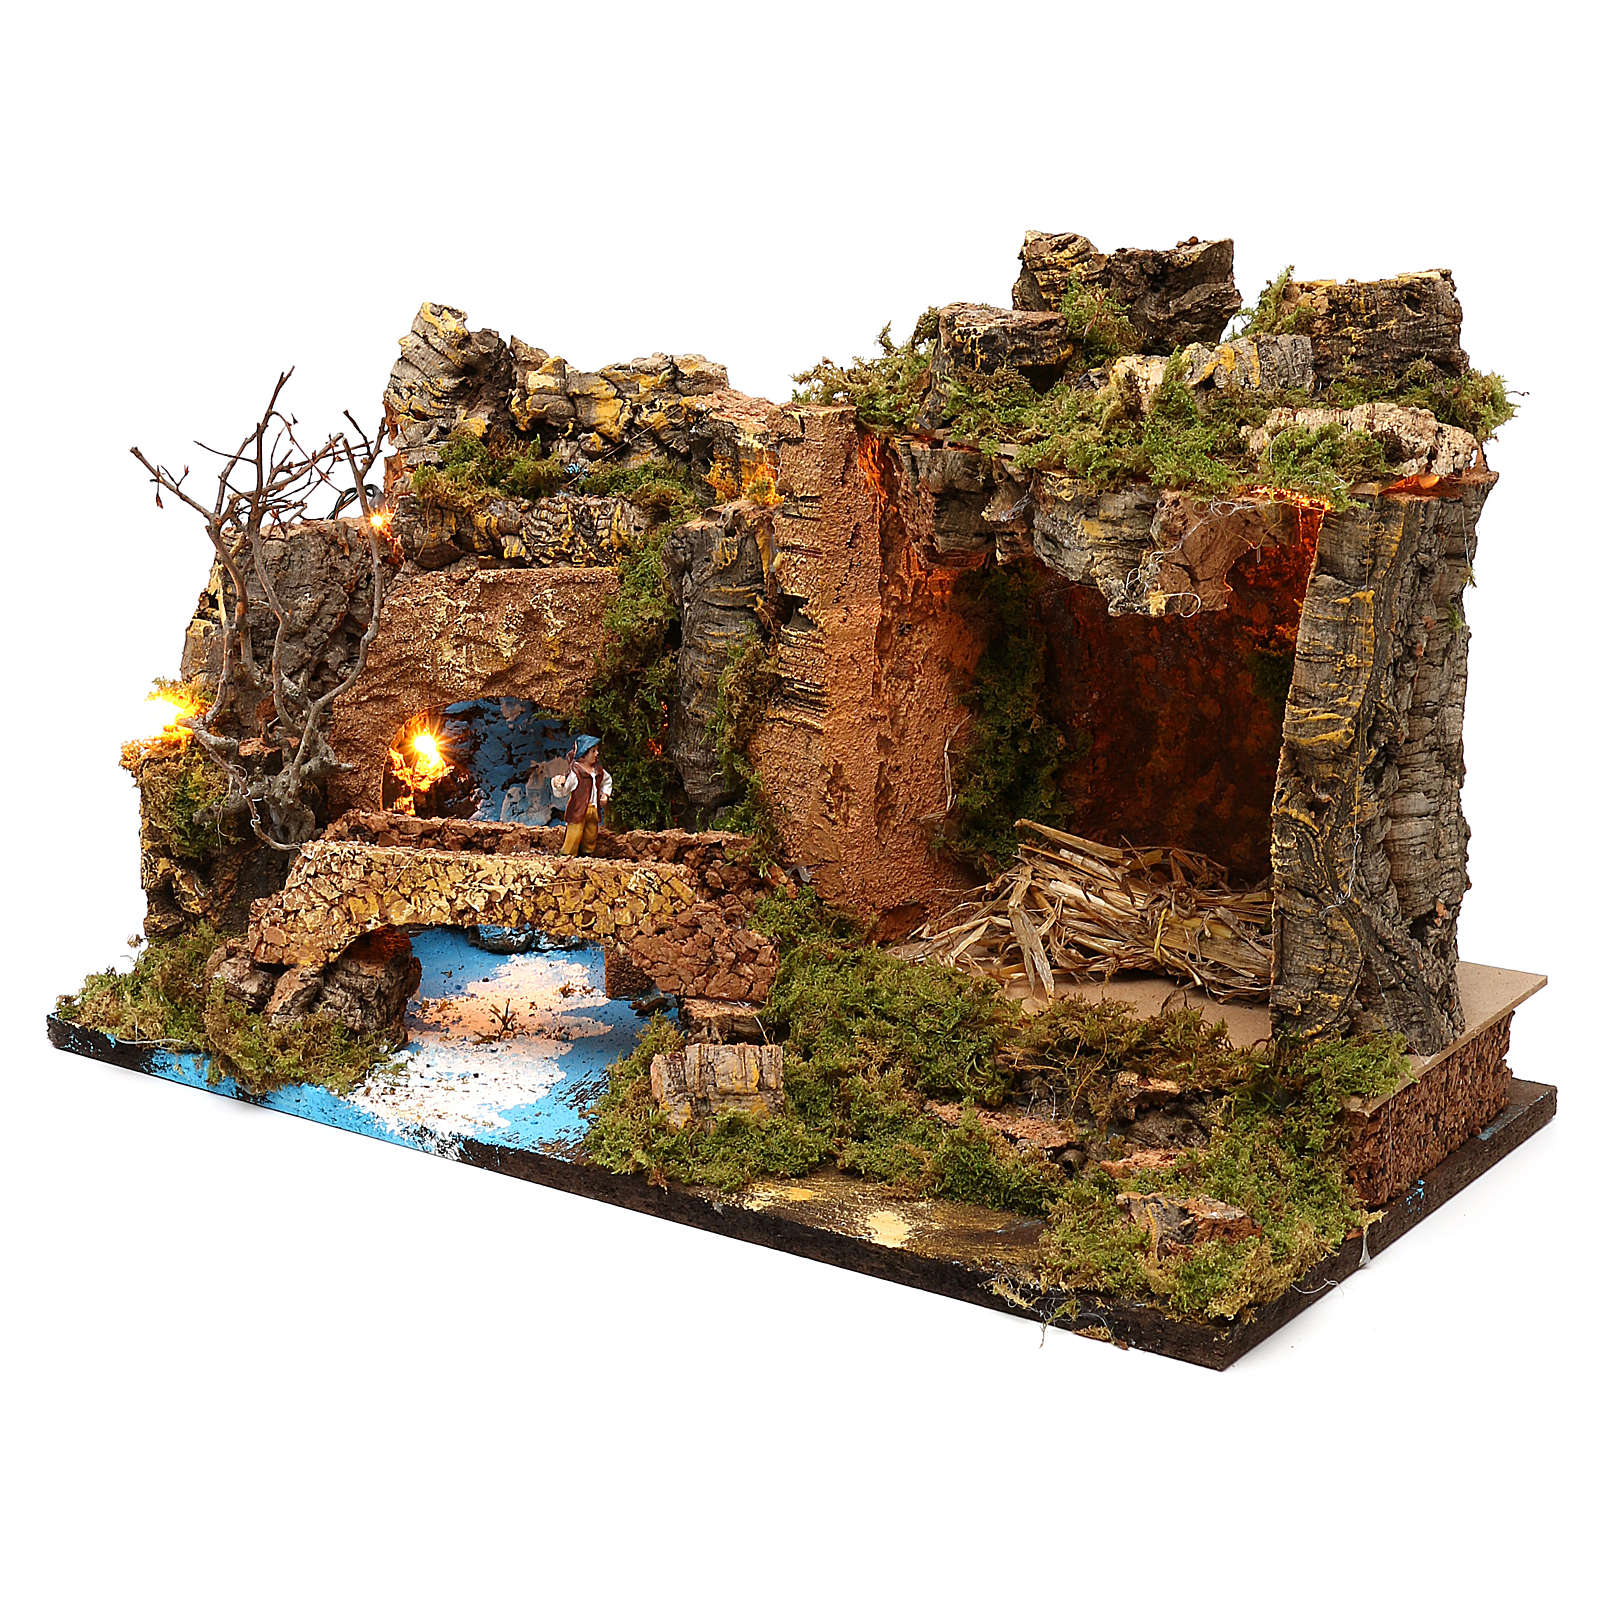 Hut with lights for Nativity scene 50x30x35 cm 4